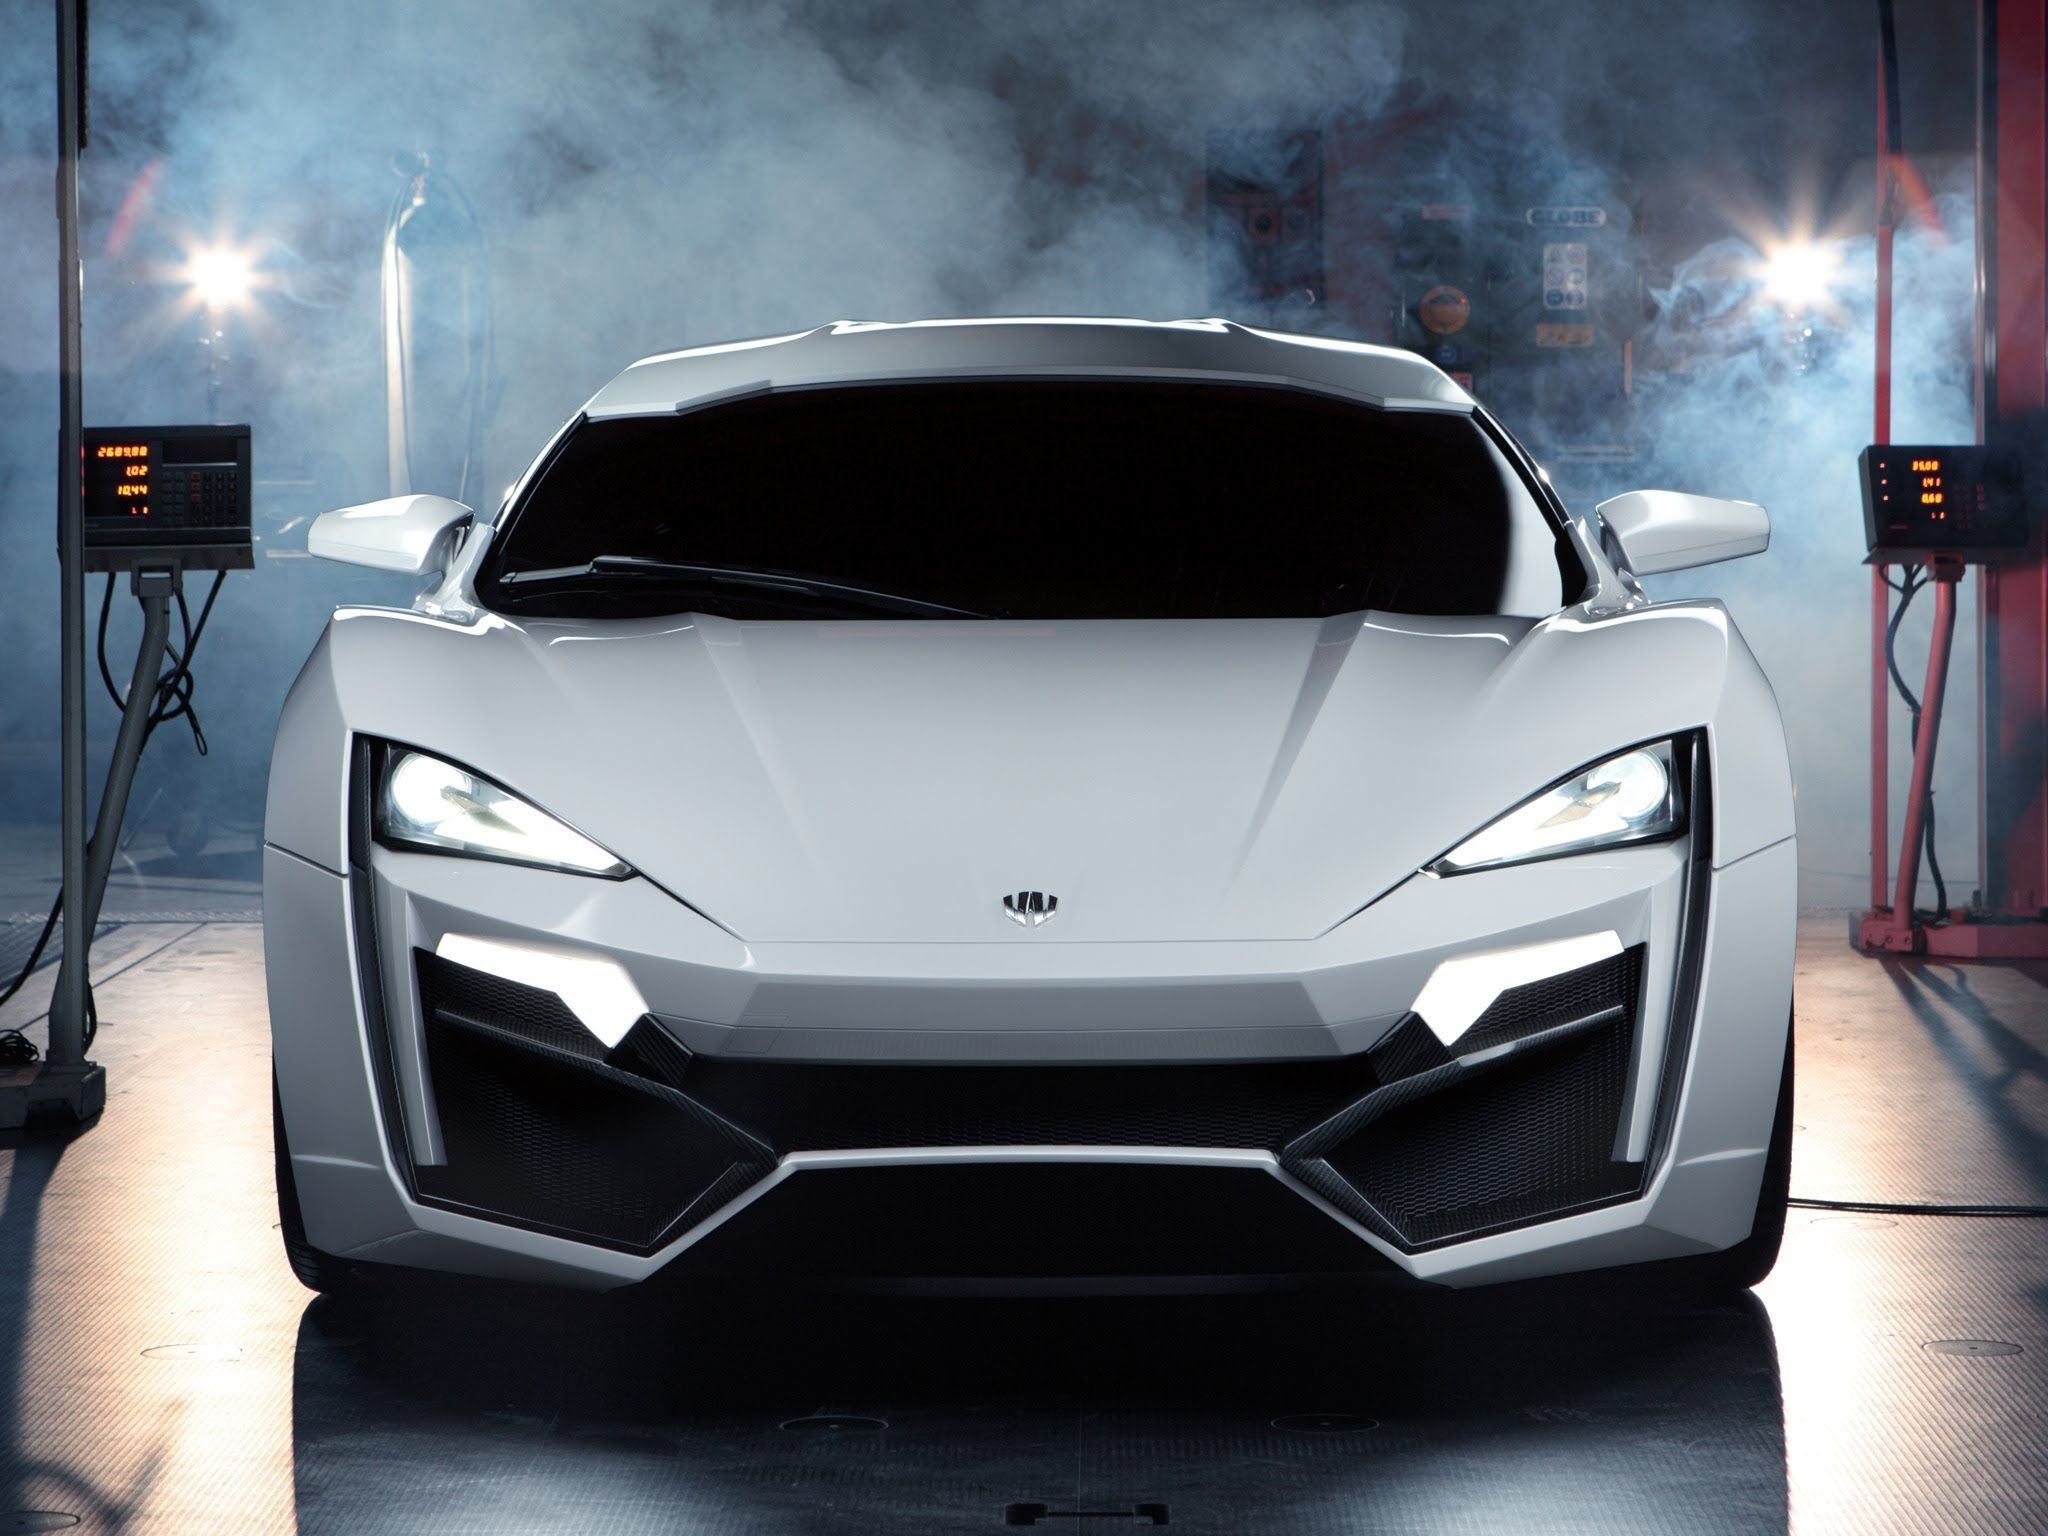 Top 10 Most Expensive Car 2016 Cars In World Best | CARS | Pinterest ...